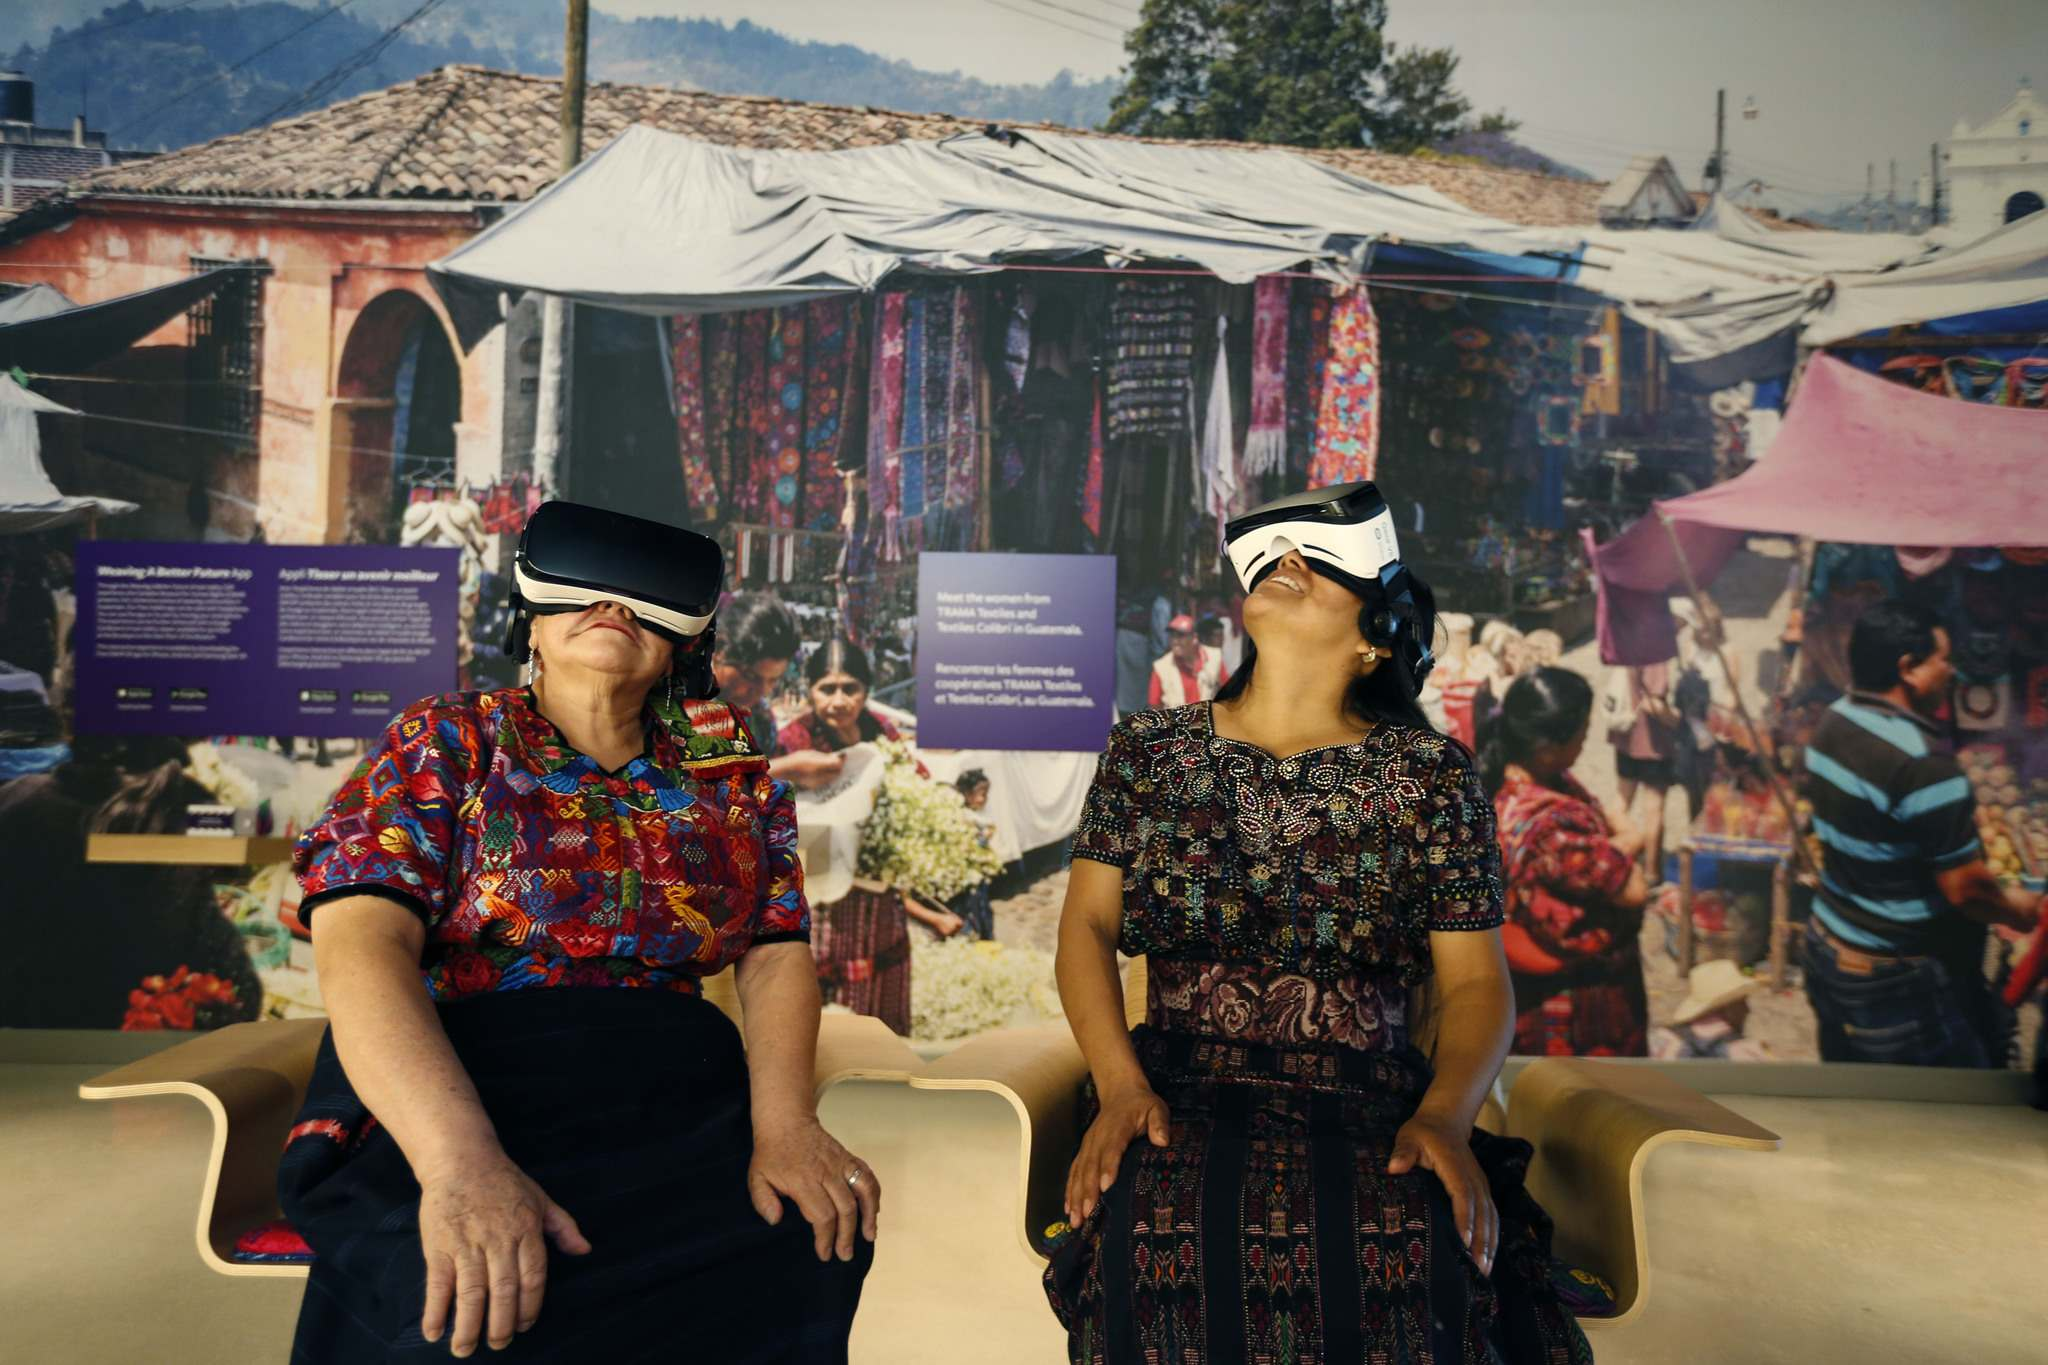 WAYNE GLOWACKI / WINNIPEG FREE PRESS</p><p>Amparo de León (left) and Oralia Chopen came from Guatemala to try the Canadian Museum for Human Rights' first 3-D virtual-reality exhibit, Empowering Women: Artisan Co-operatives that Transform Communities.</p>